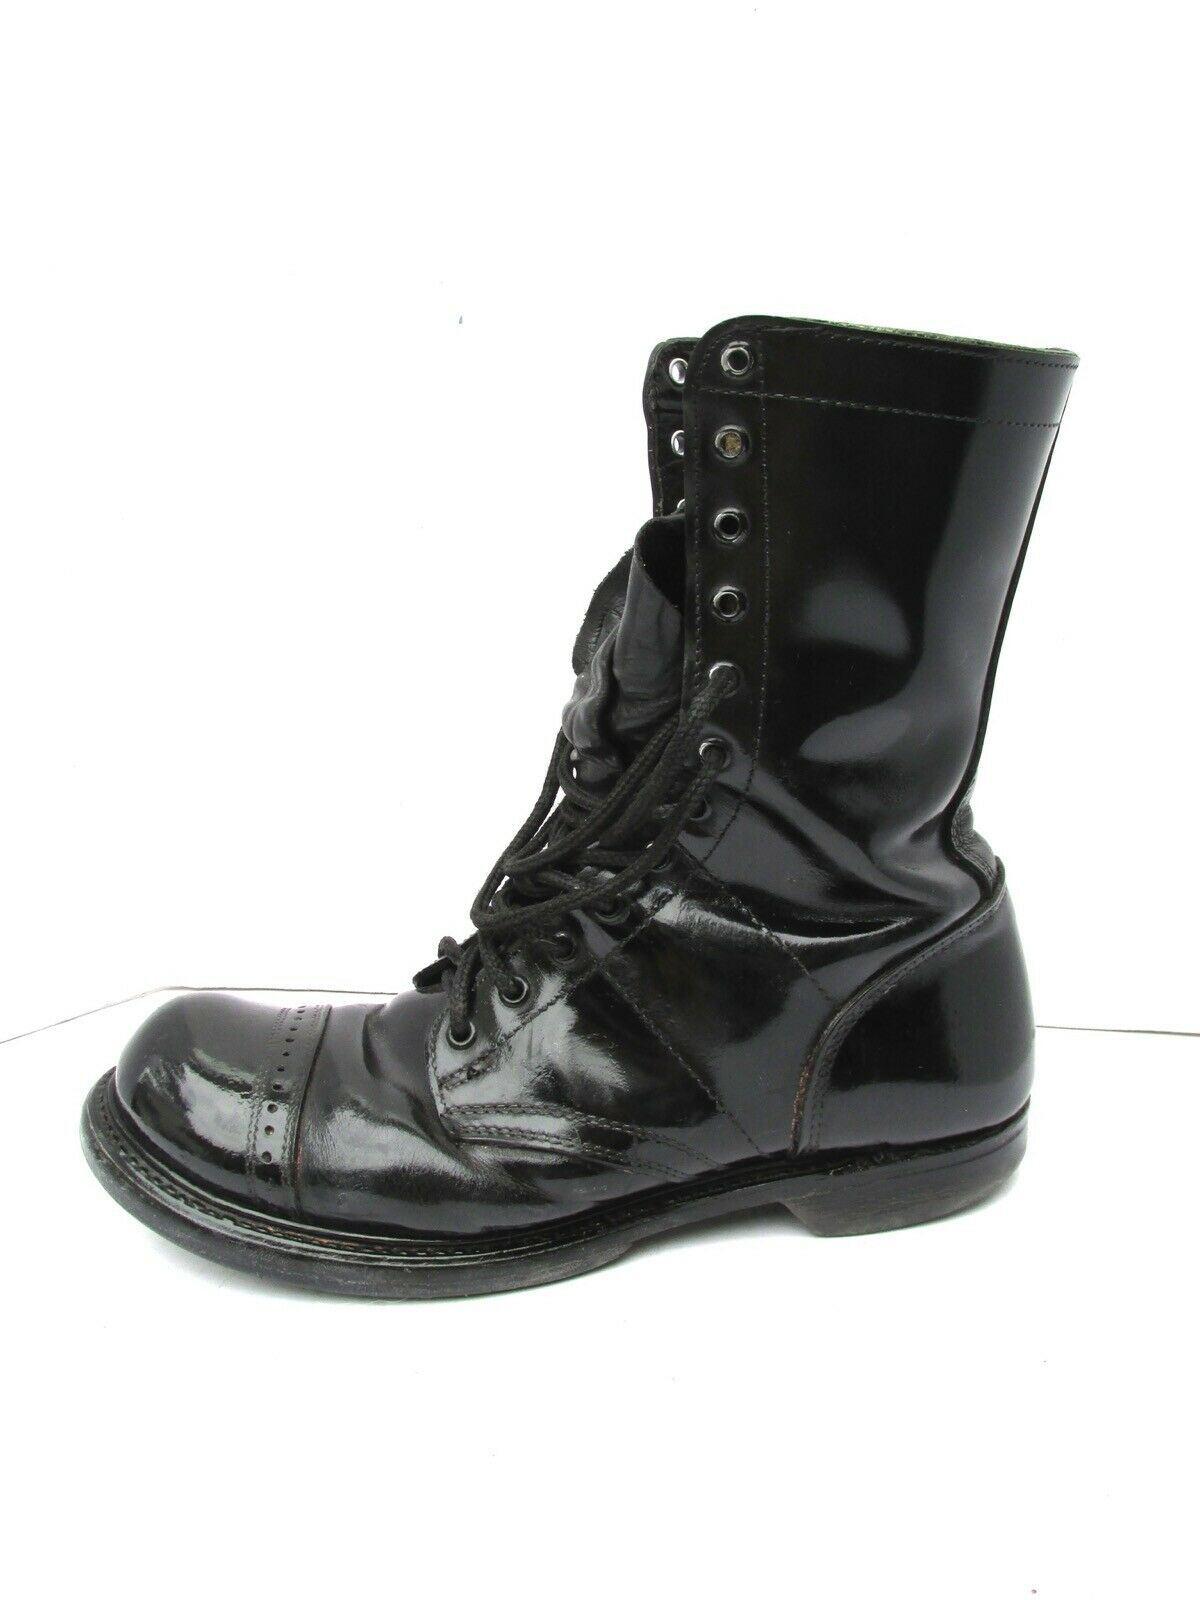 VTG HH Double H 12 eye Lace Shiny Cap Toe U.S. MILITARY Combat Biker Boots 10 D